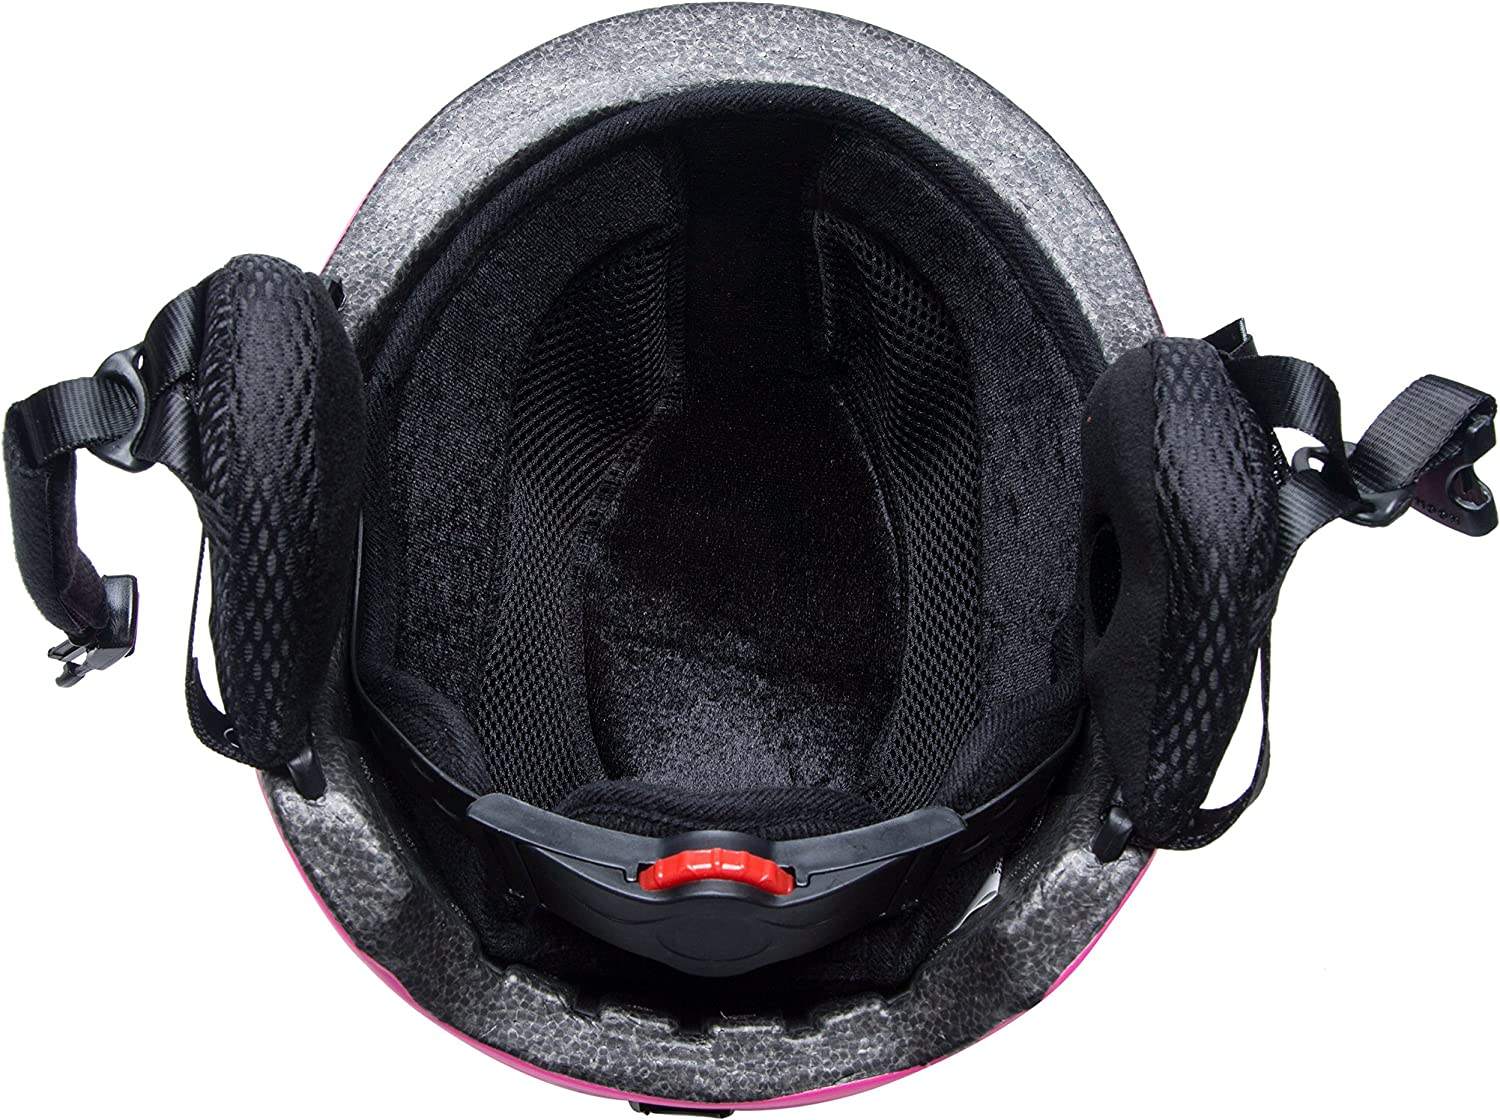 UNISTRENGH Professional Ski Snowboard Helmet Lightweight Durable Snow Sports Helmets with Removable Washable Lining Chin Pad and Earmuff for Adult Youth